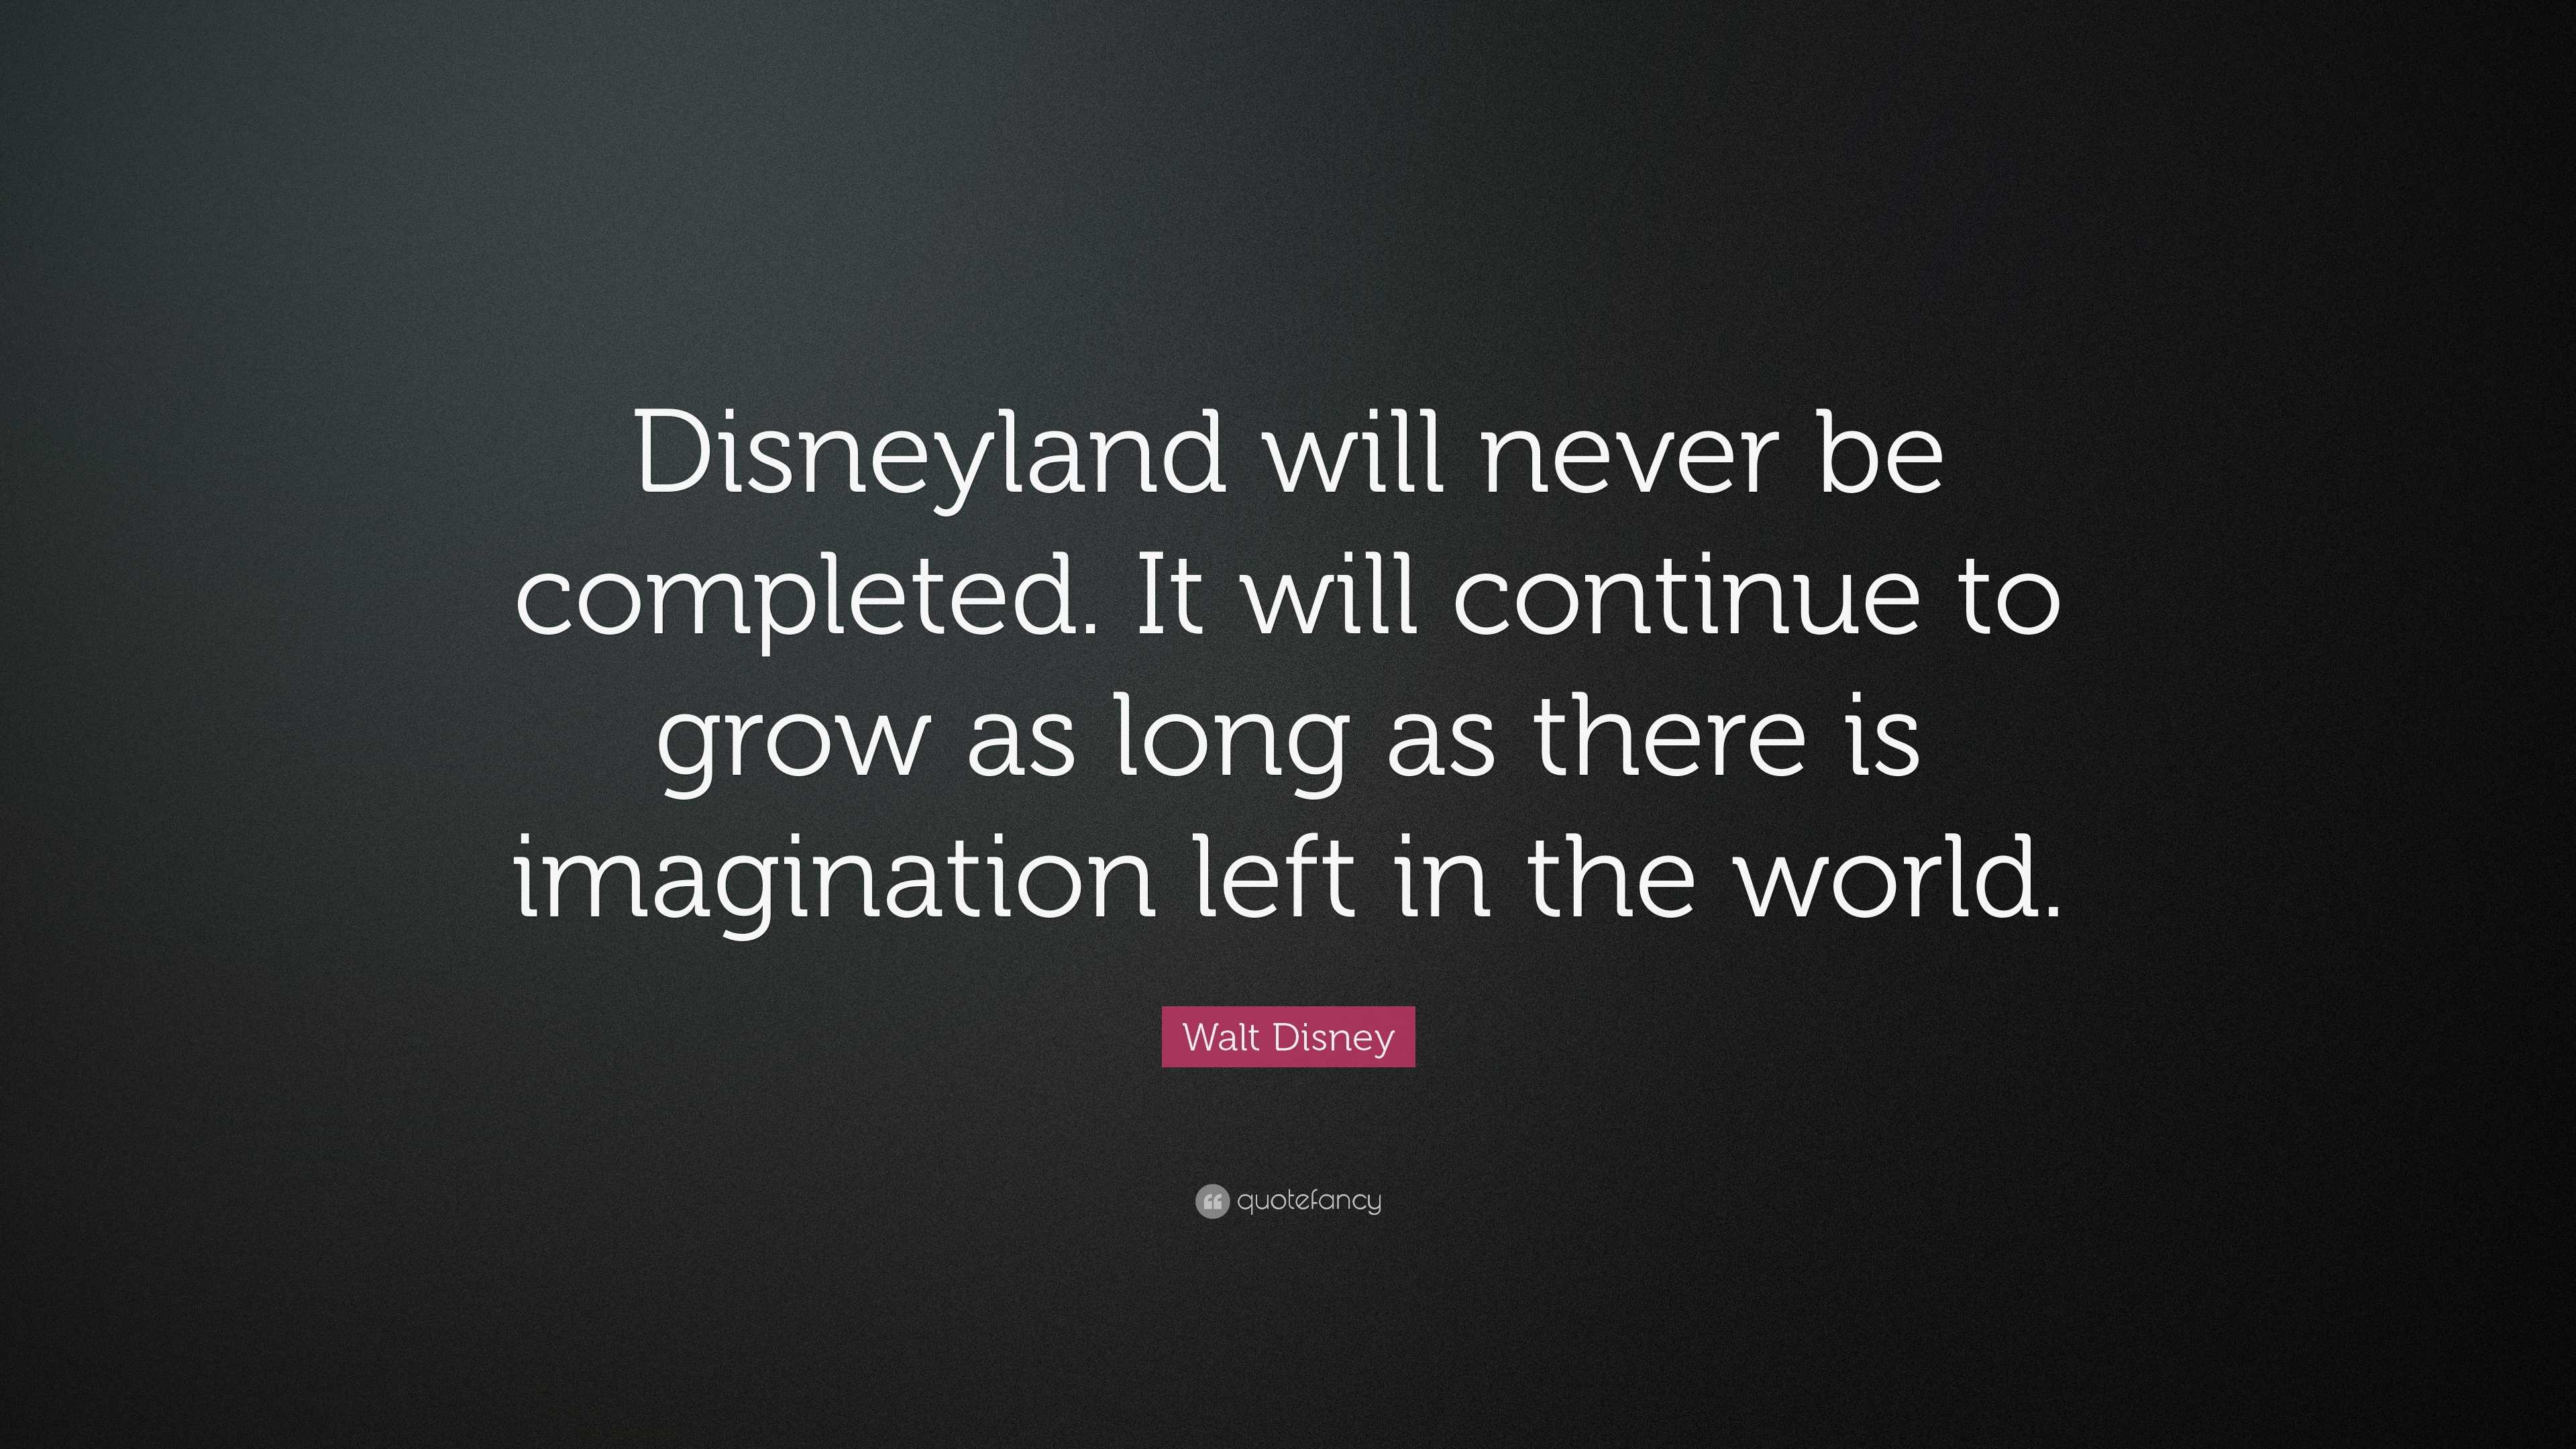 Walt Disney Disneyland Will Never Be Completed Quotes